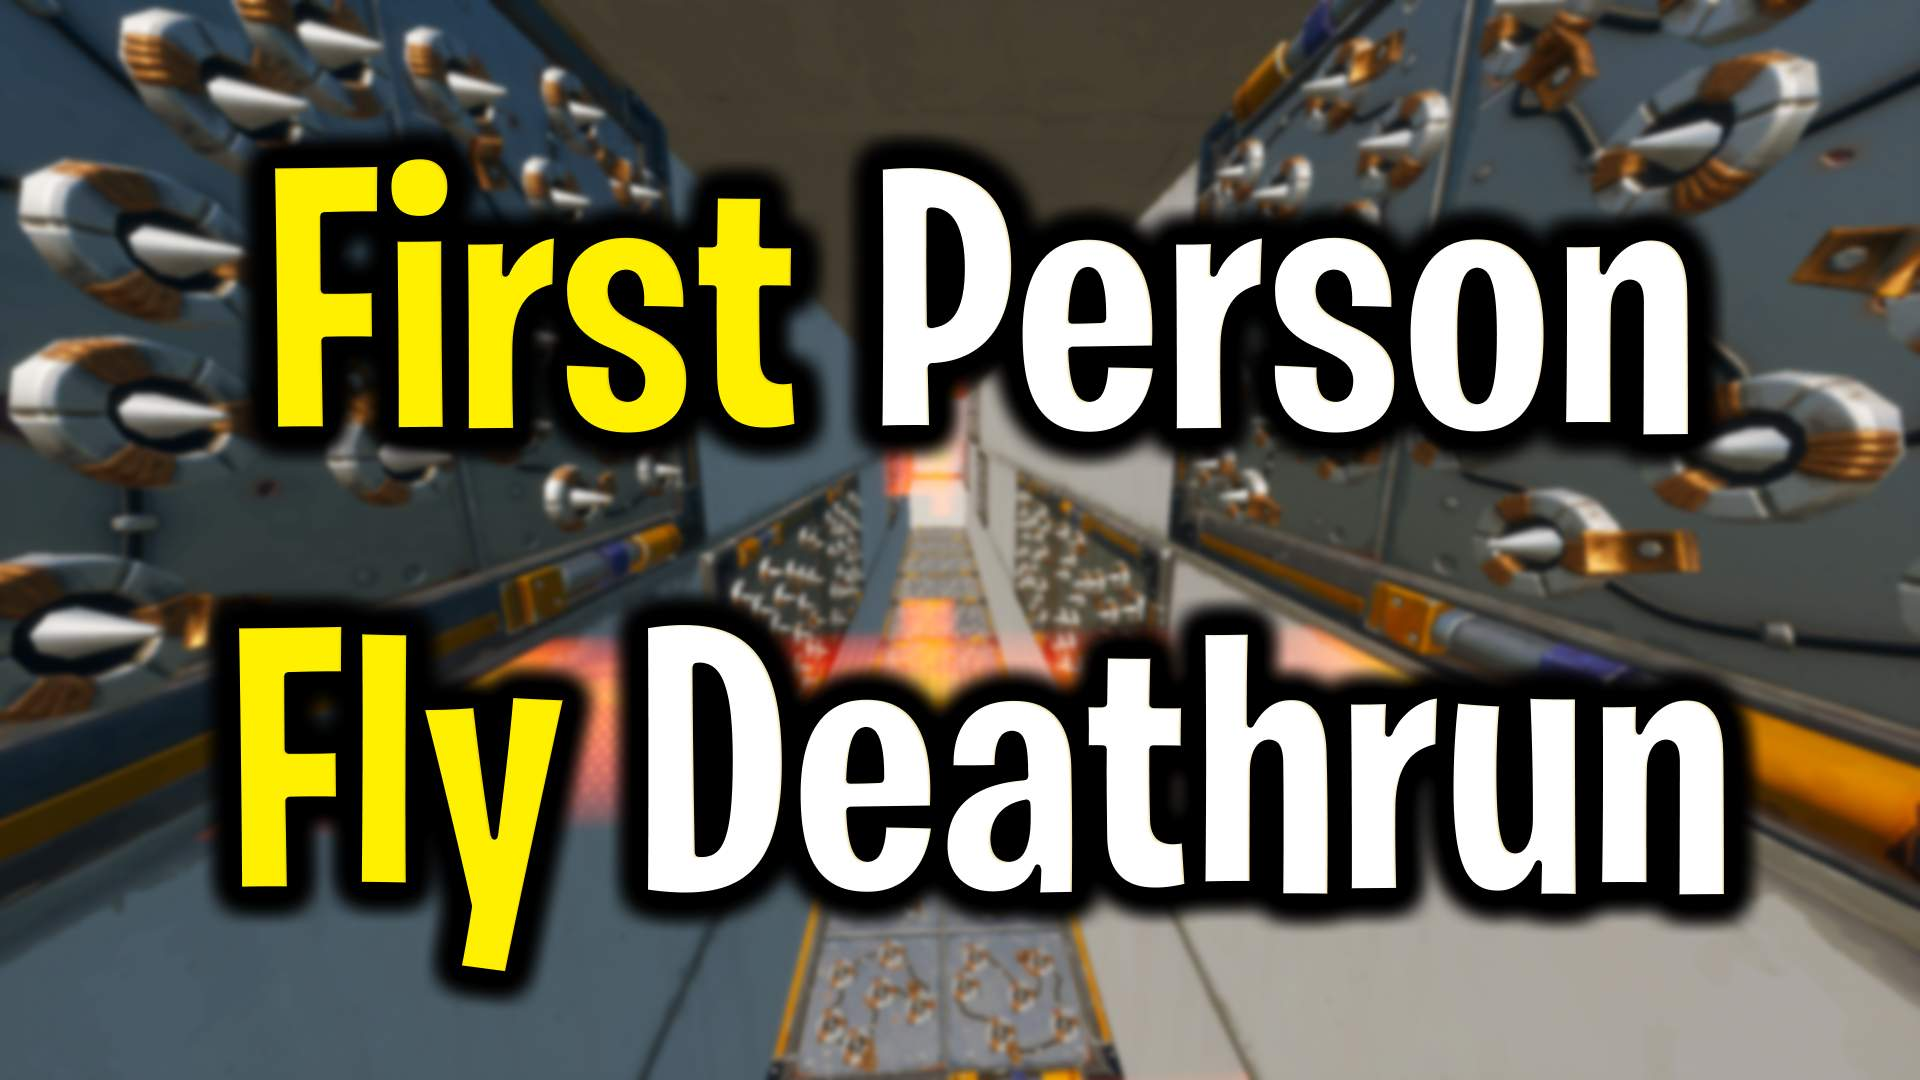 FIRST PERSON FLY DEATHRUN